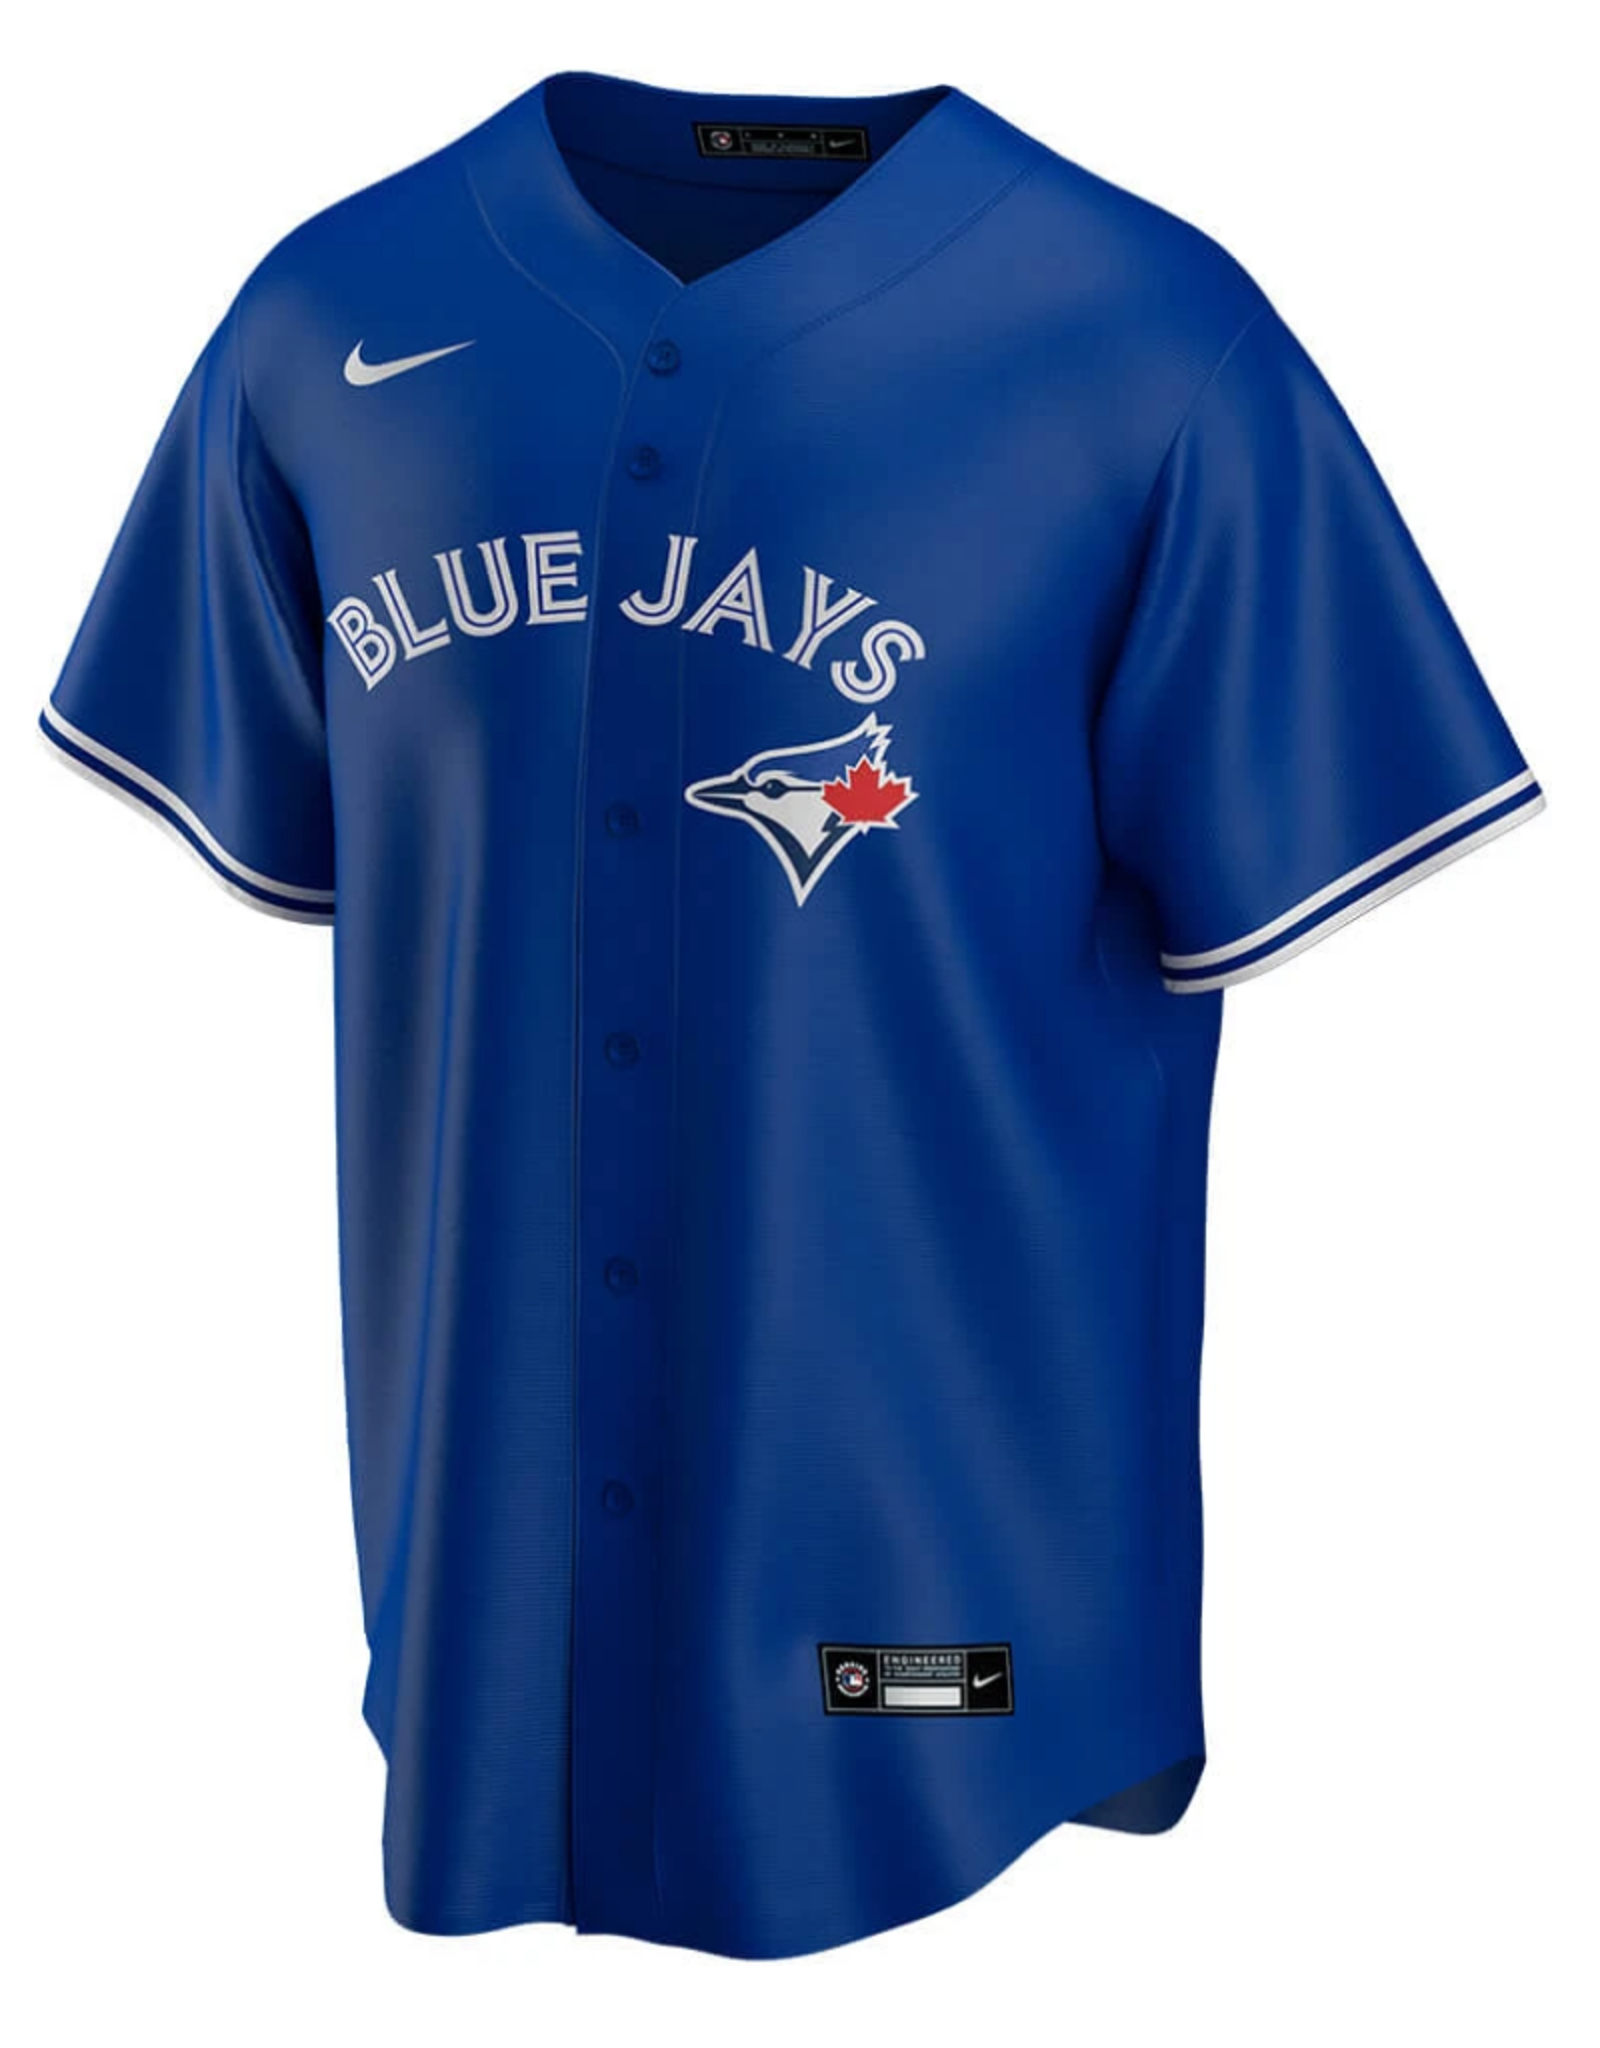 Nike Men's Replica Alternate Jersey Guerrero Jr. #27 Toronto Blue Jays Royal